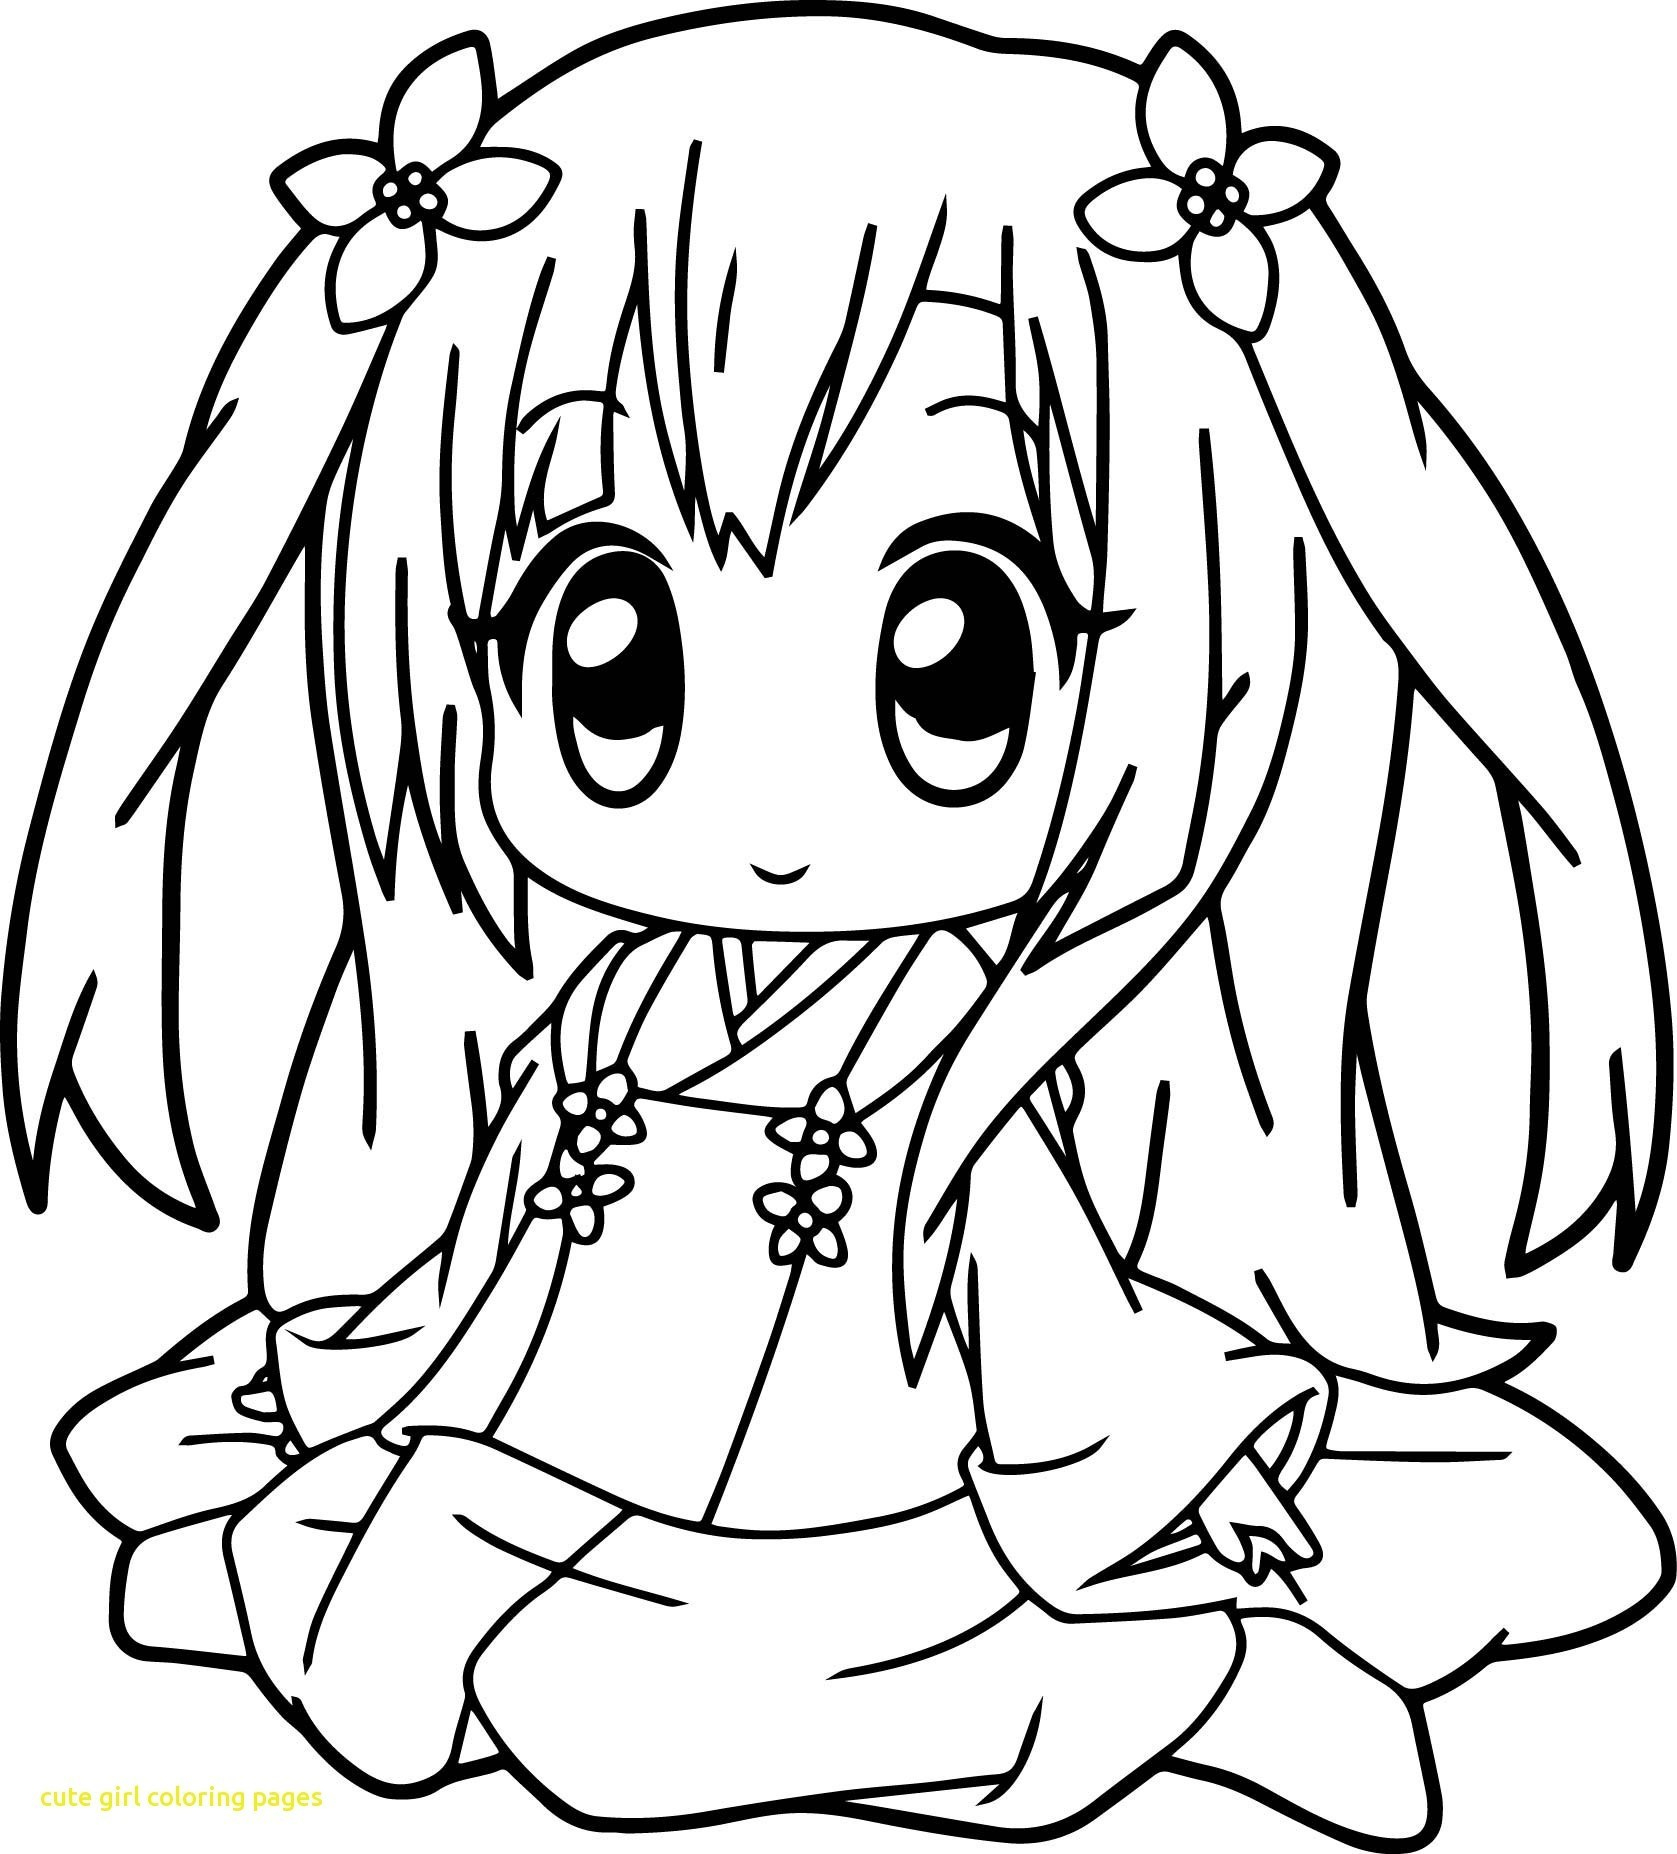 - Cute Girl Coloring Pages Cute Anime Color Pages To Print In Girl